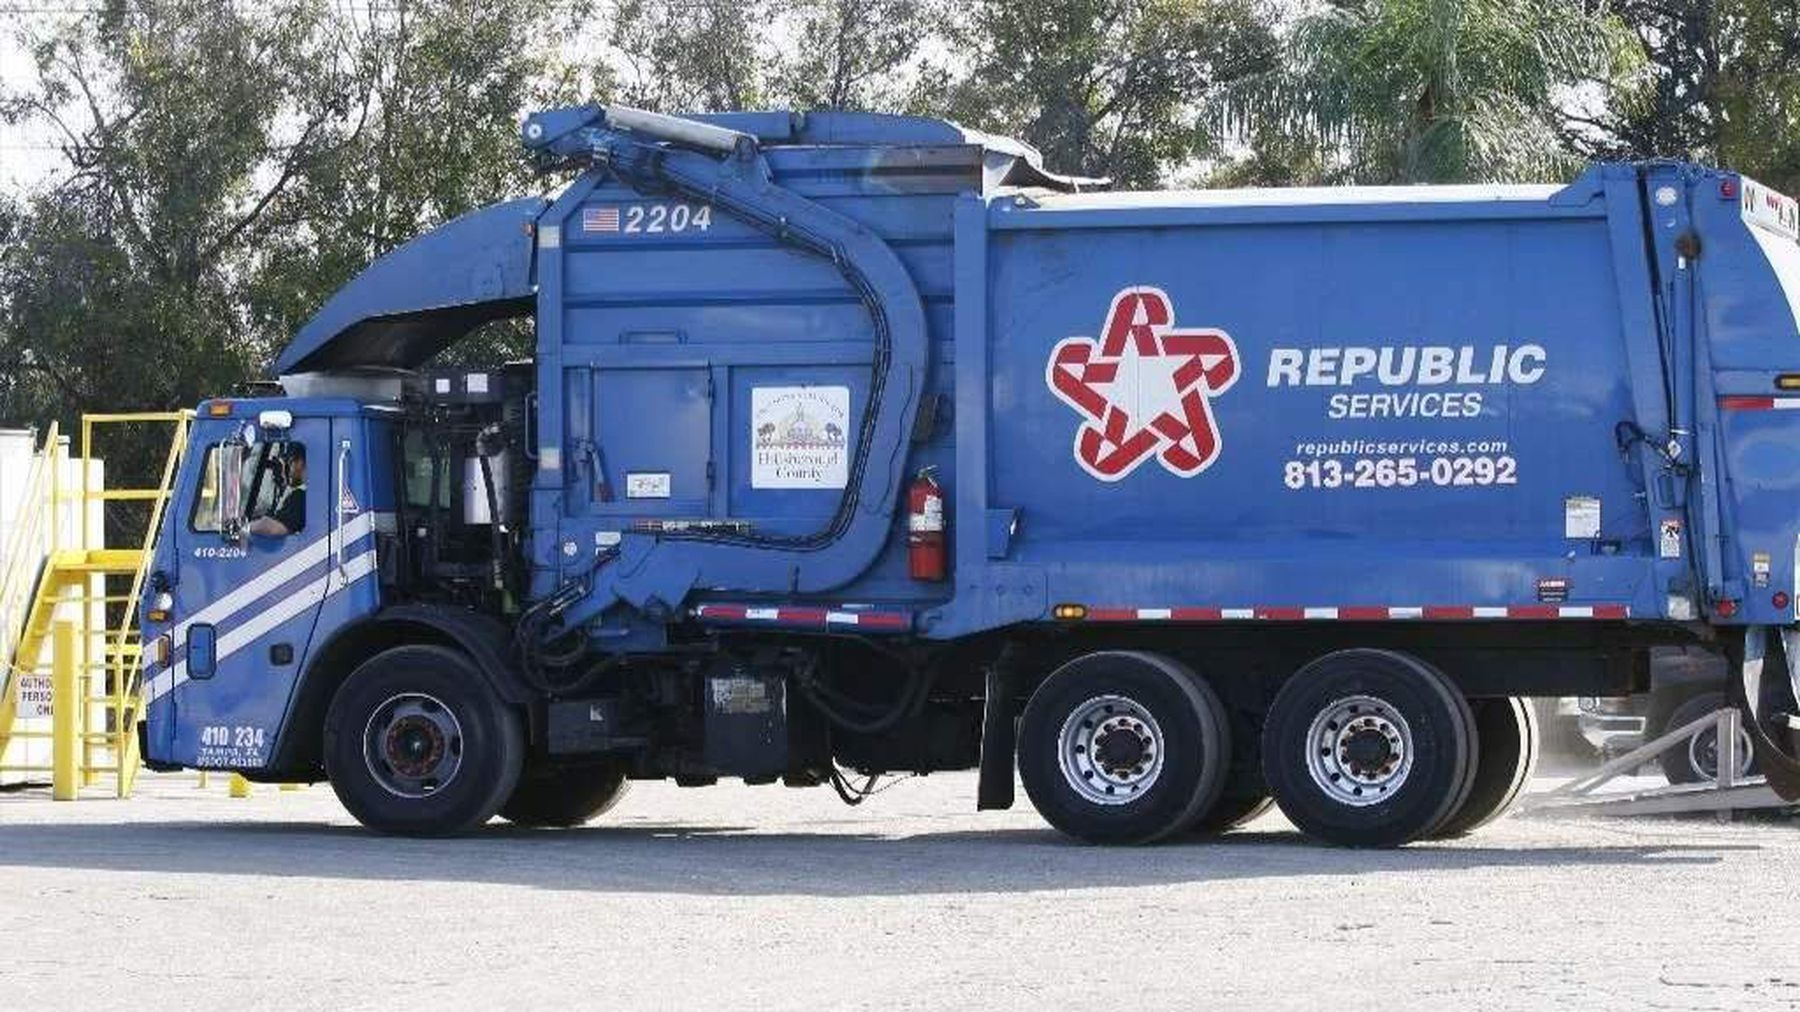 With Price Poised To Go Up For Hillsborough Trash